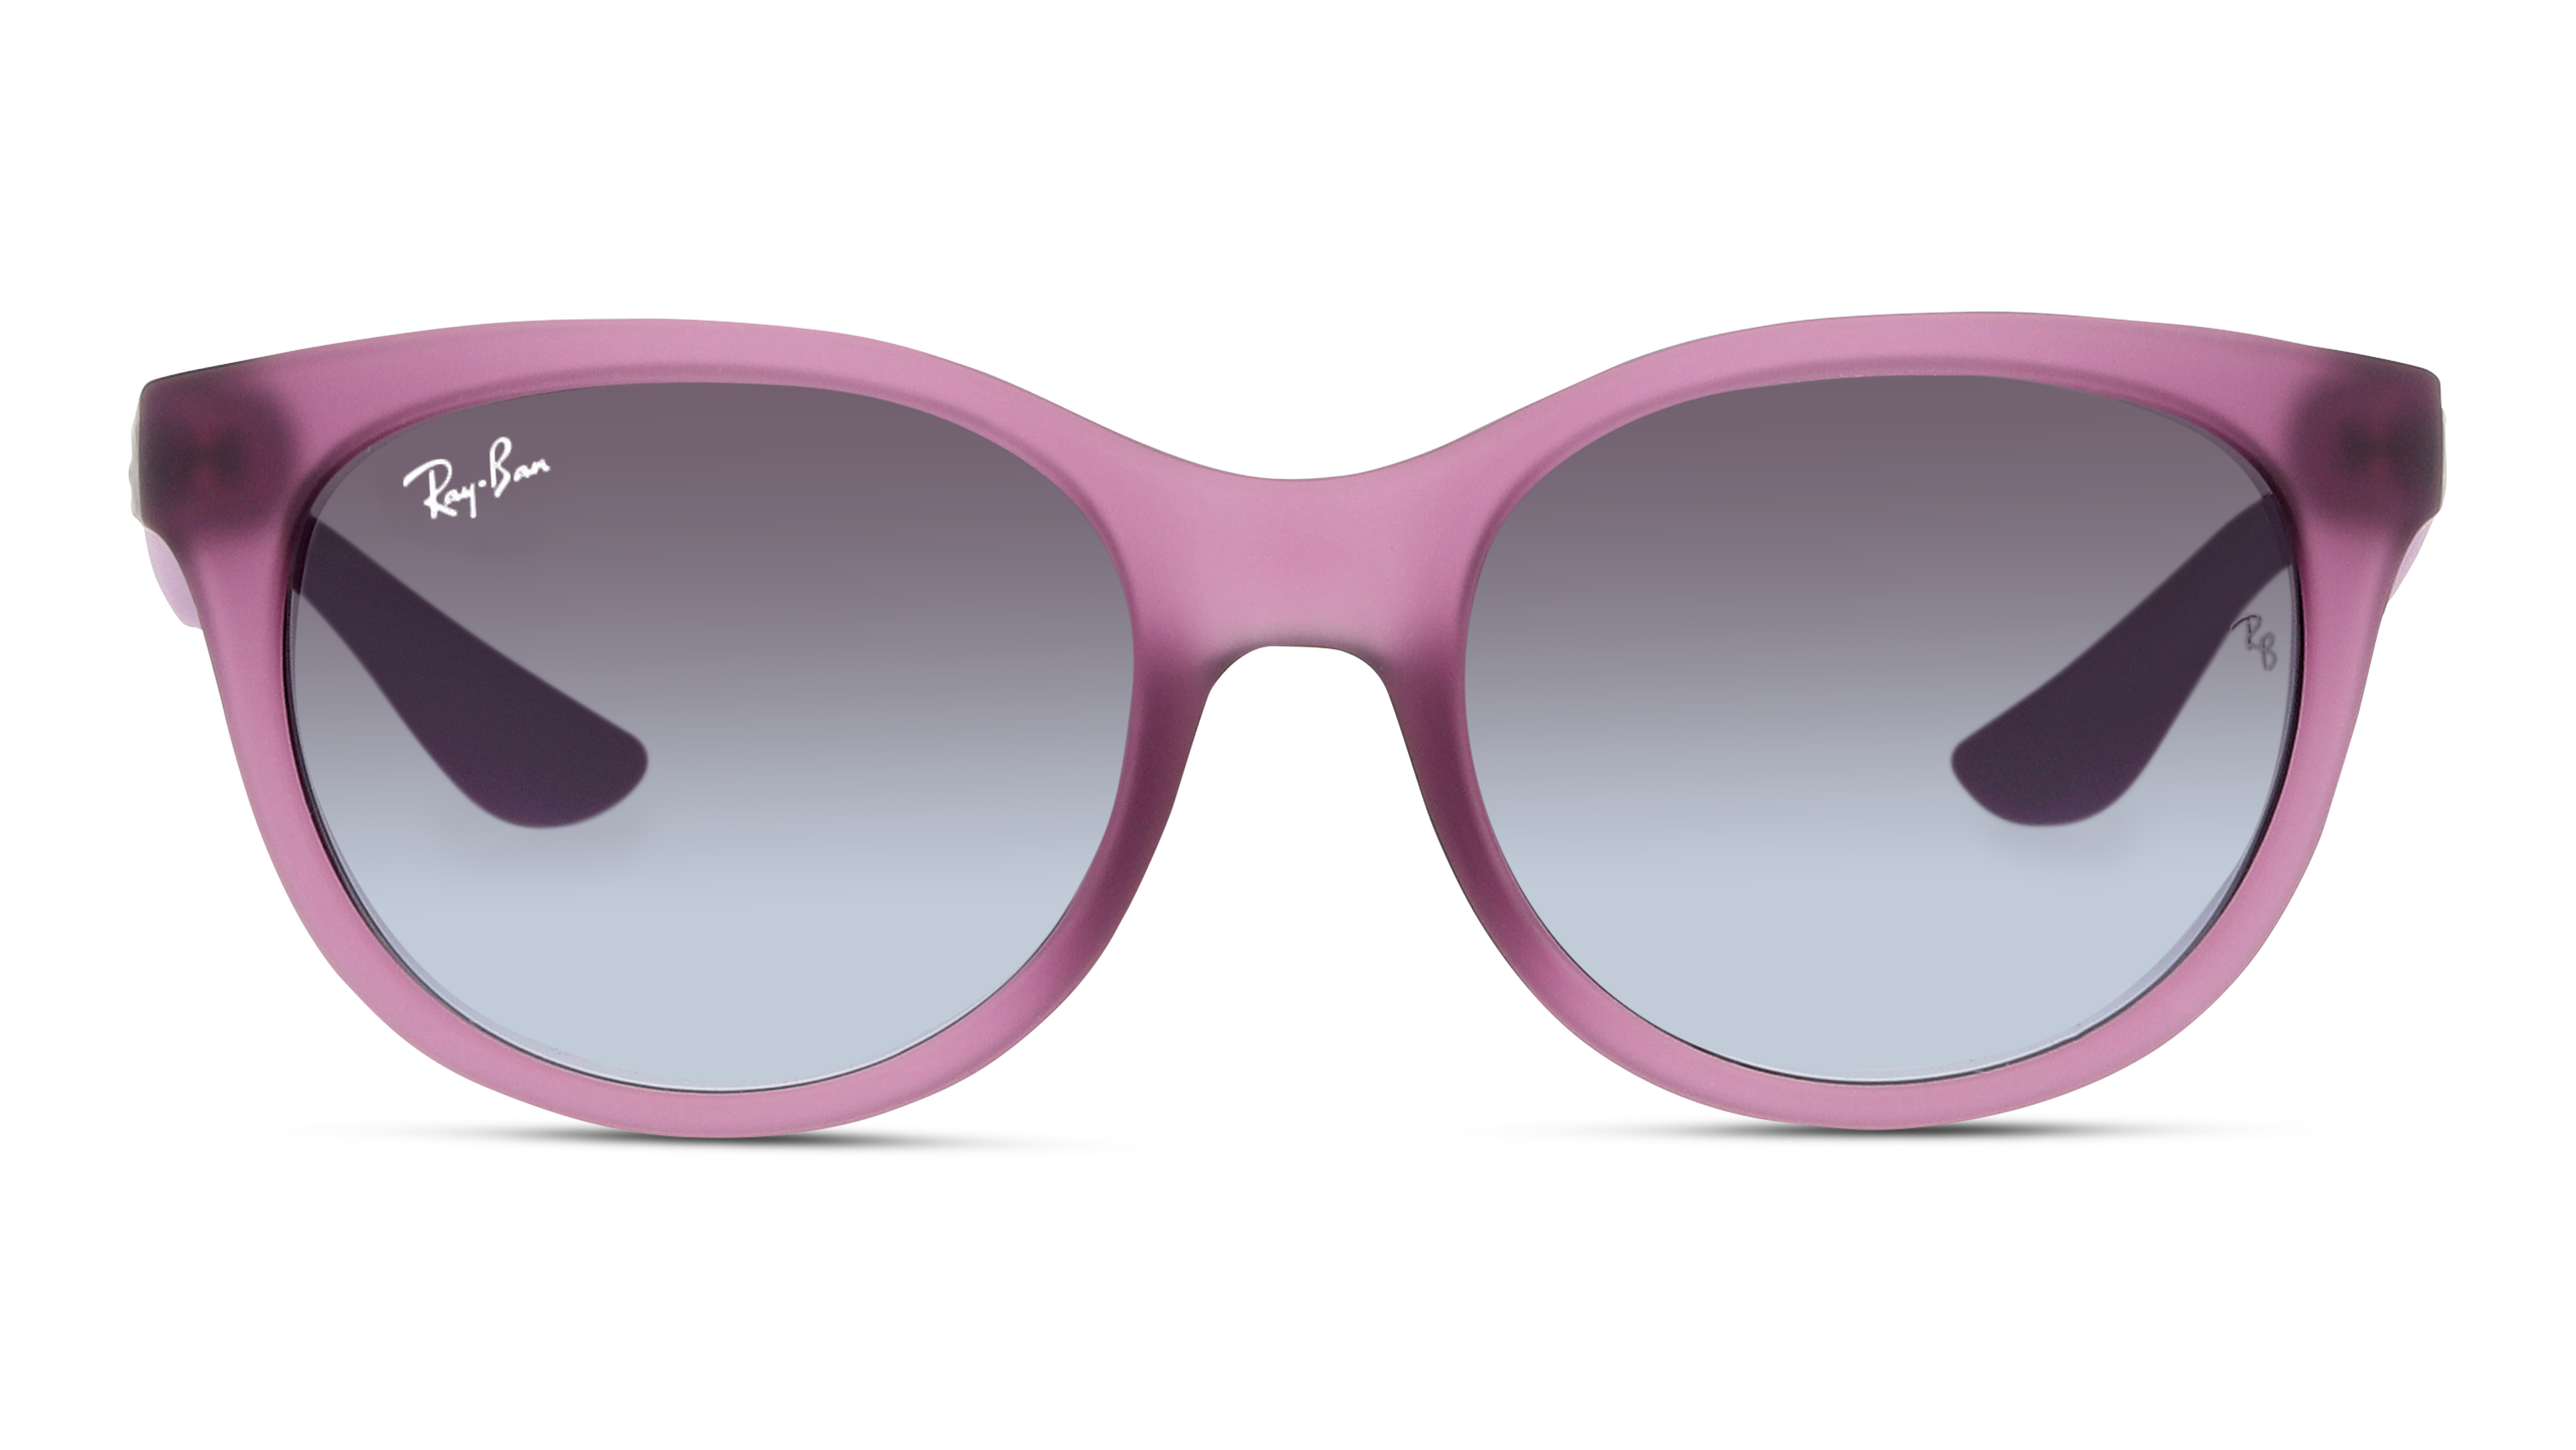 Front Ray-Ban Ray-Ban 0RJ9068S 70568G 47/16 Paars/Roze